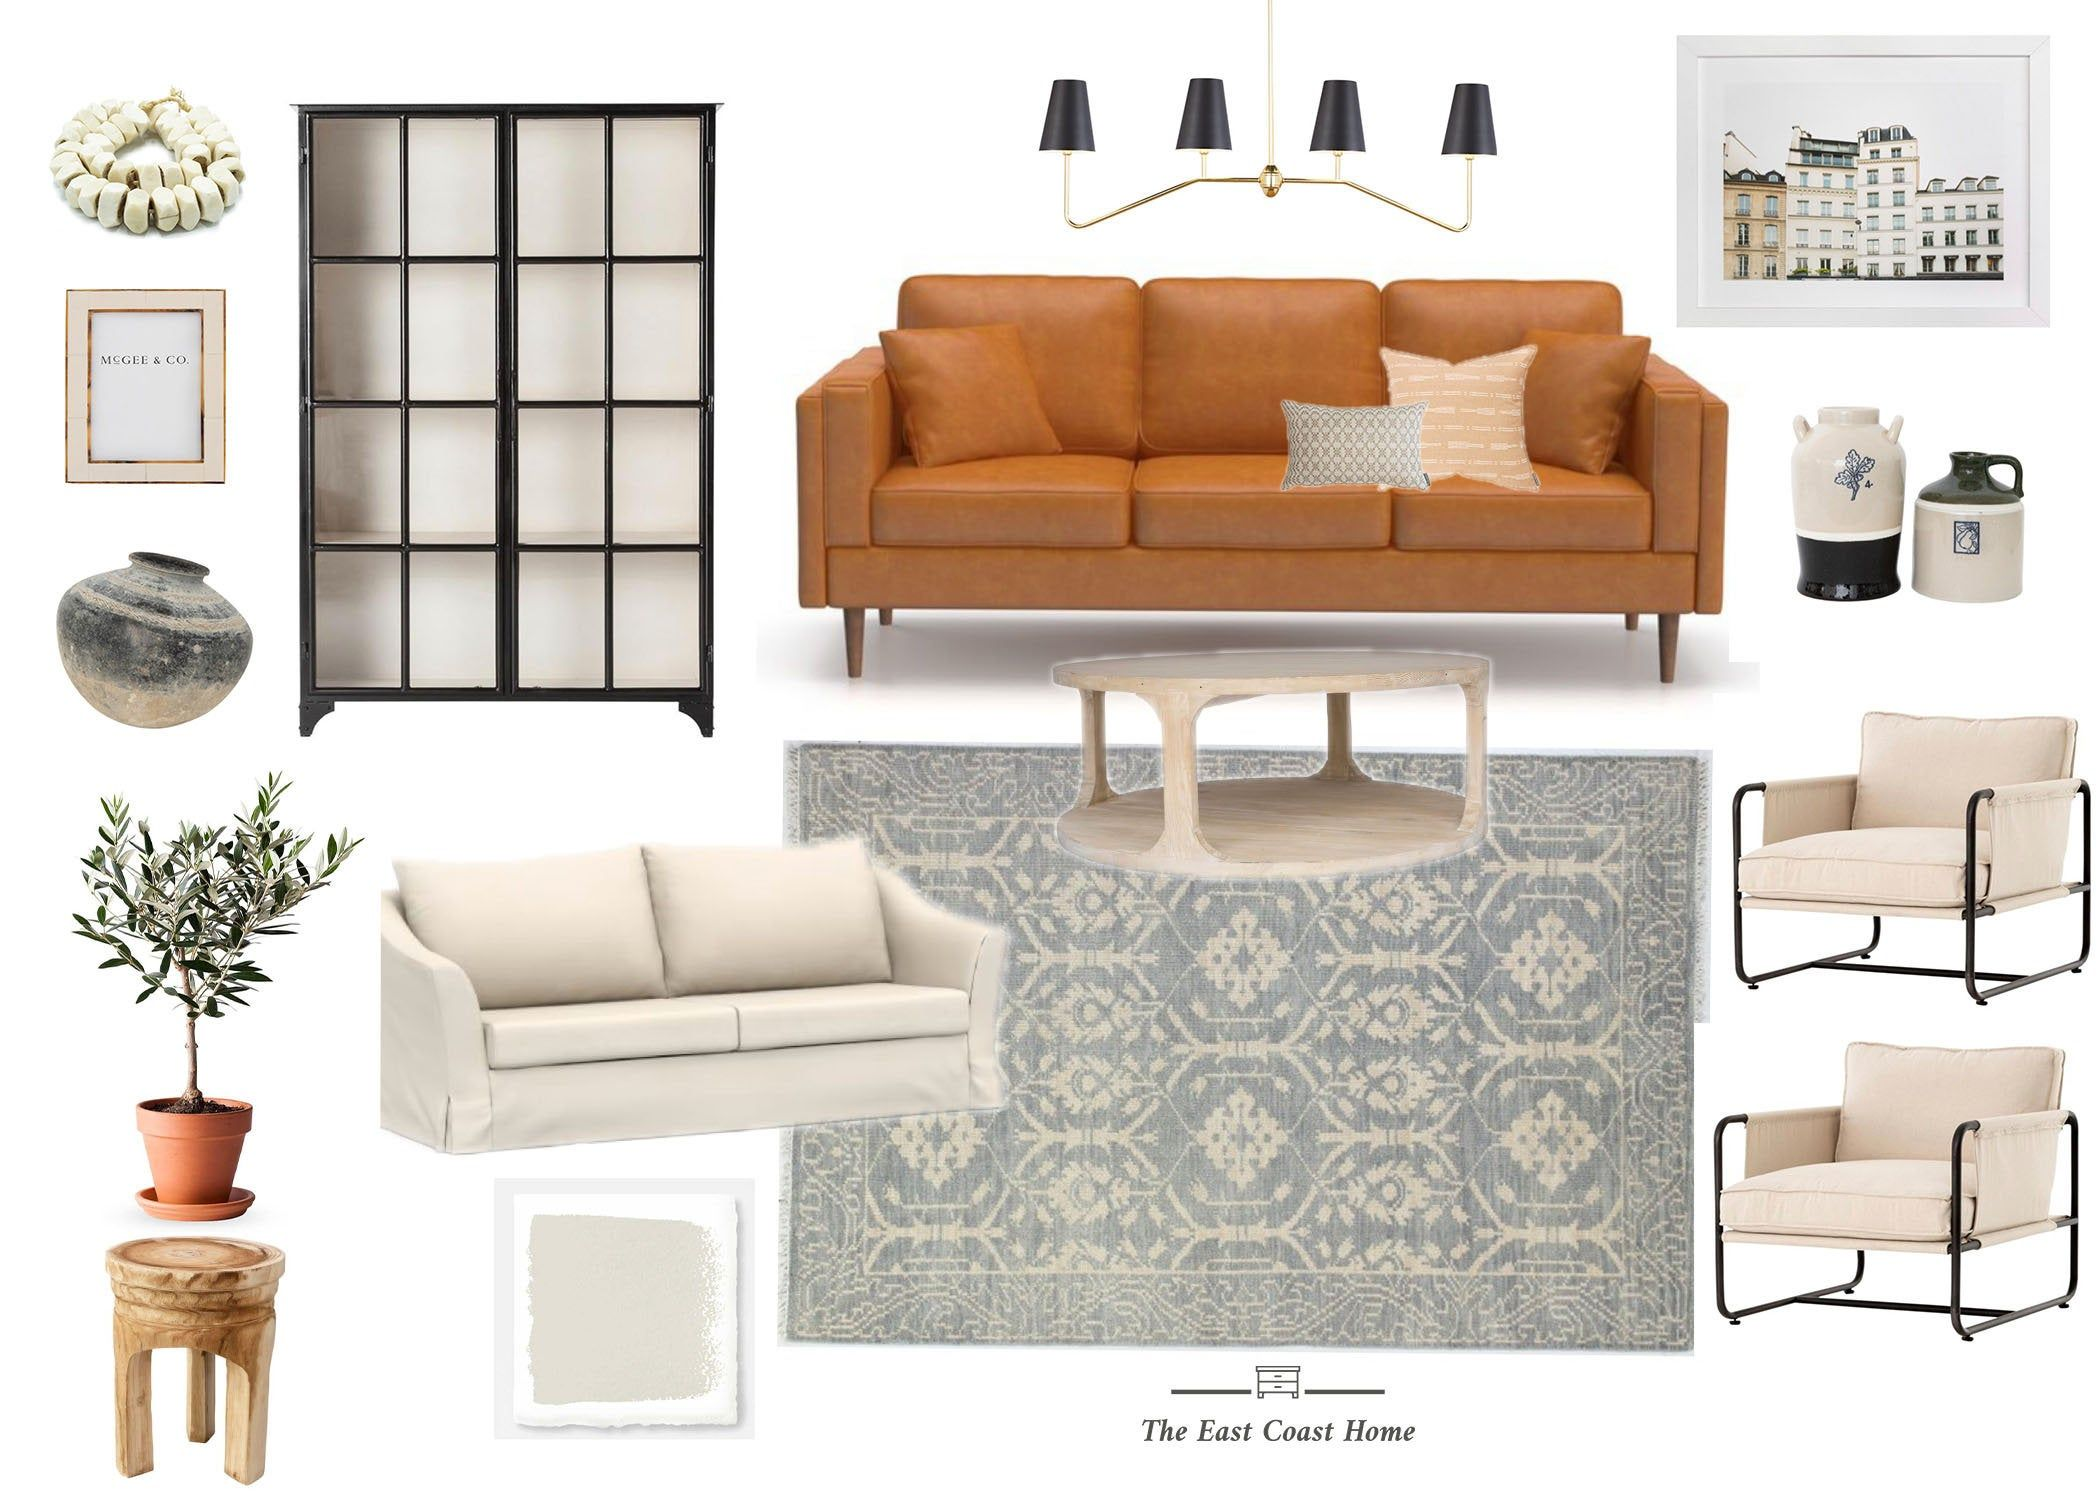 Interior Design Service E Design You Will Receive 1 Space Plan 1 Mood Board And An Onlin In 2020 Interior Design Interior Design Mood Board Interior Design Boards